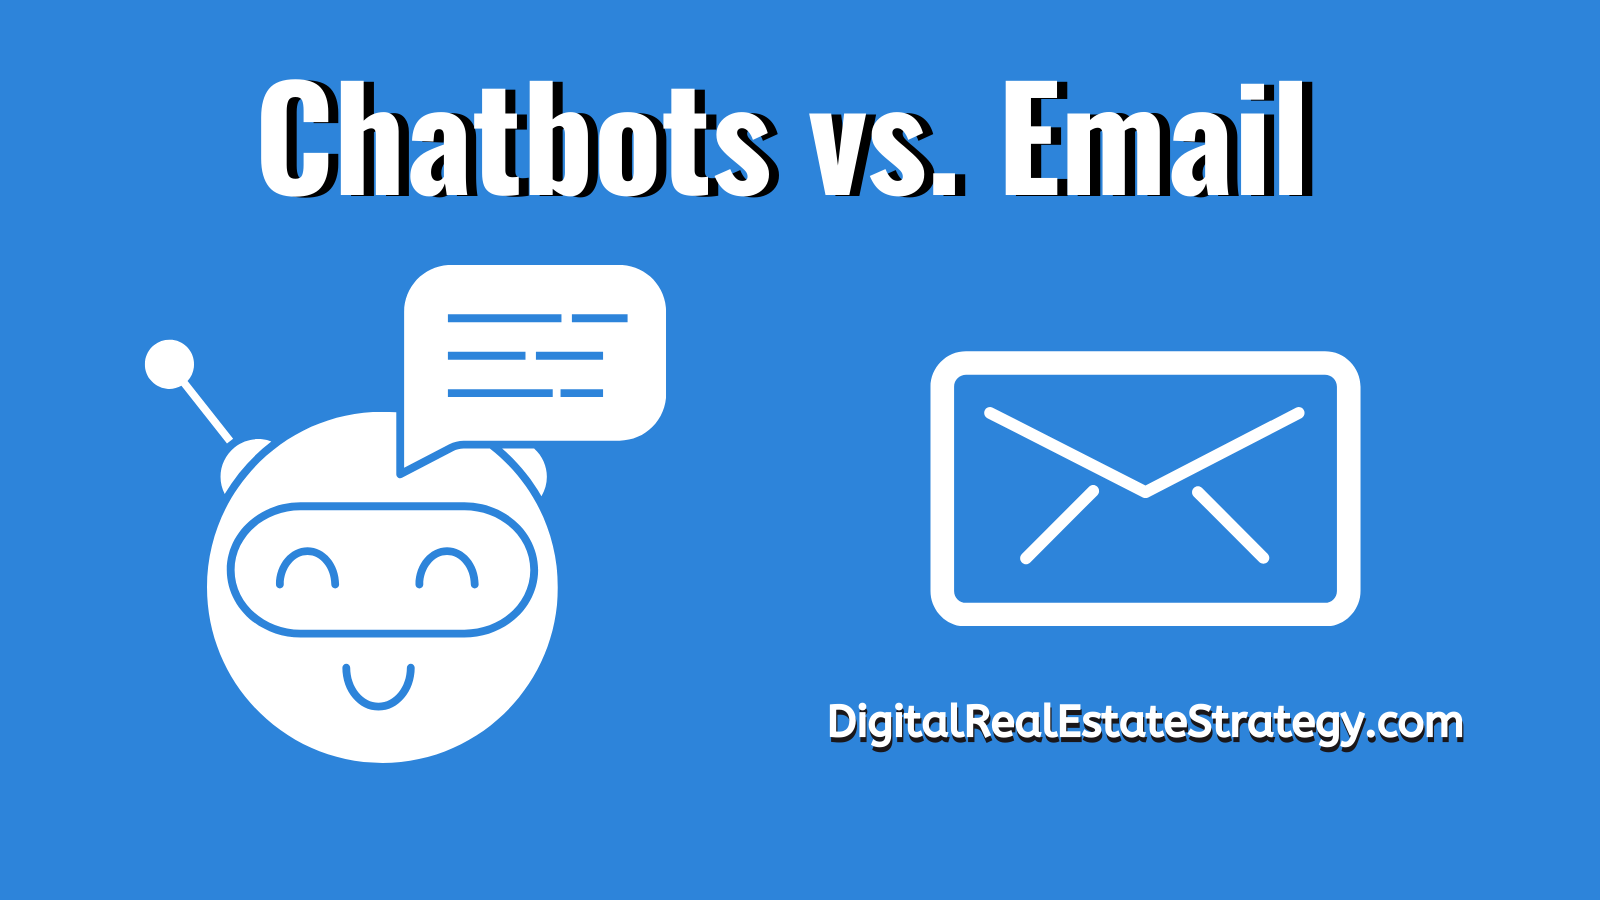 Chatbots For Real Estate - Chatbots Vs Email Marketing